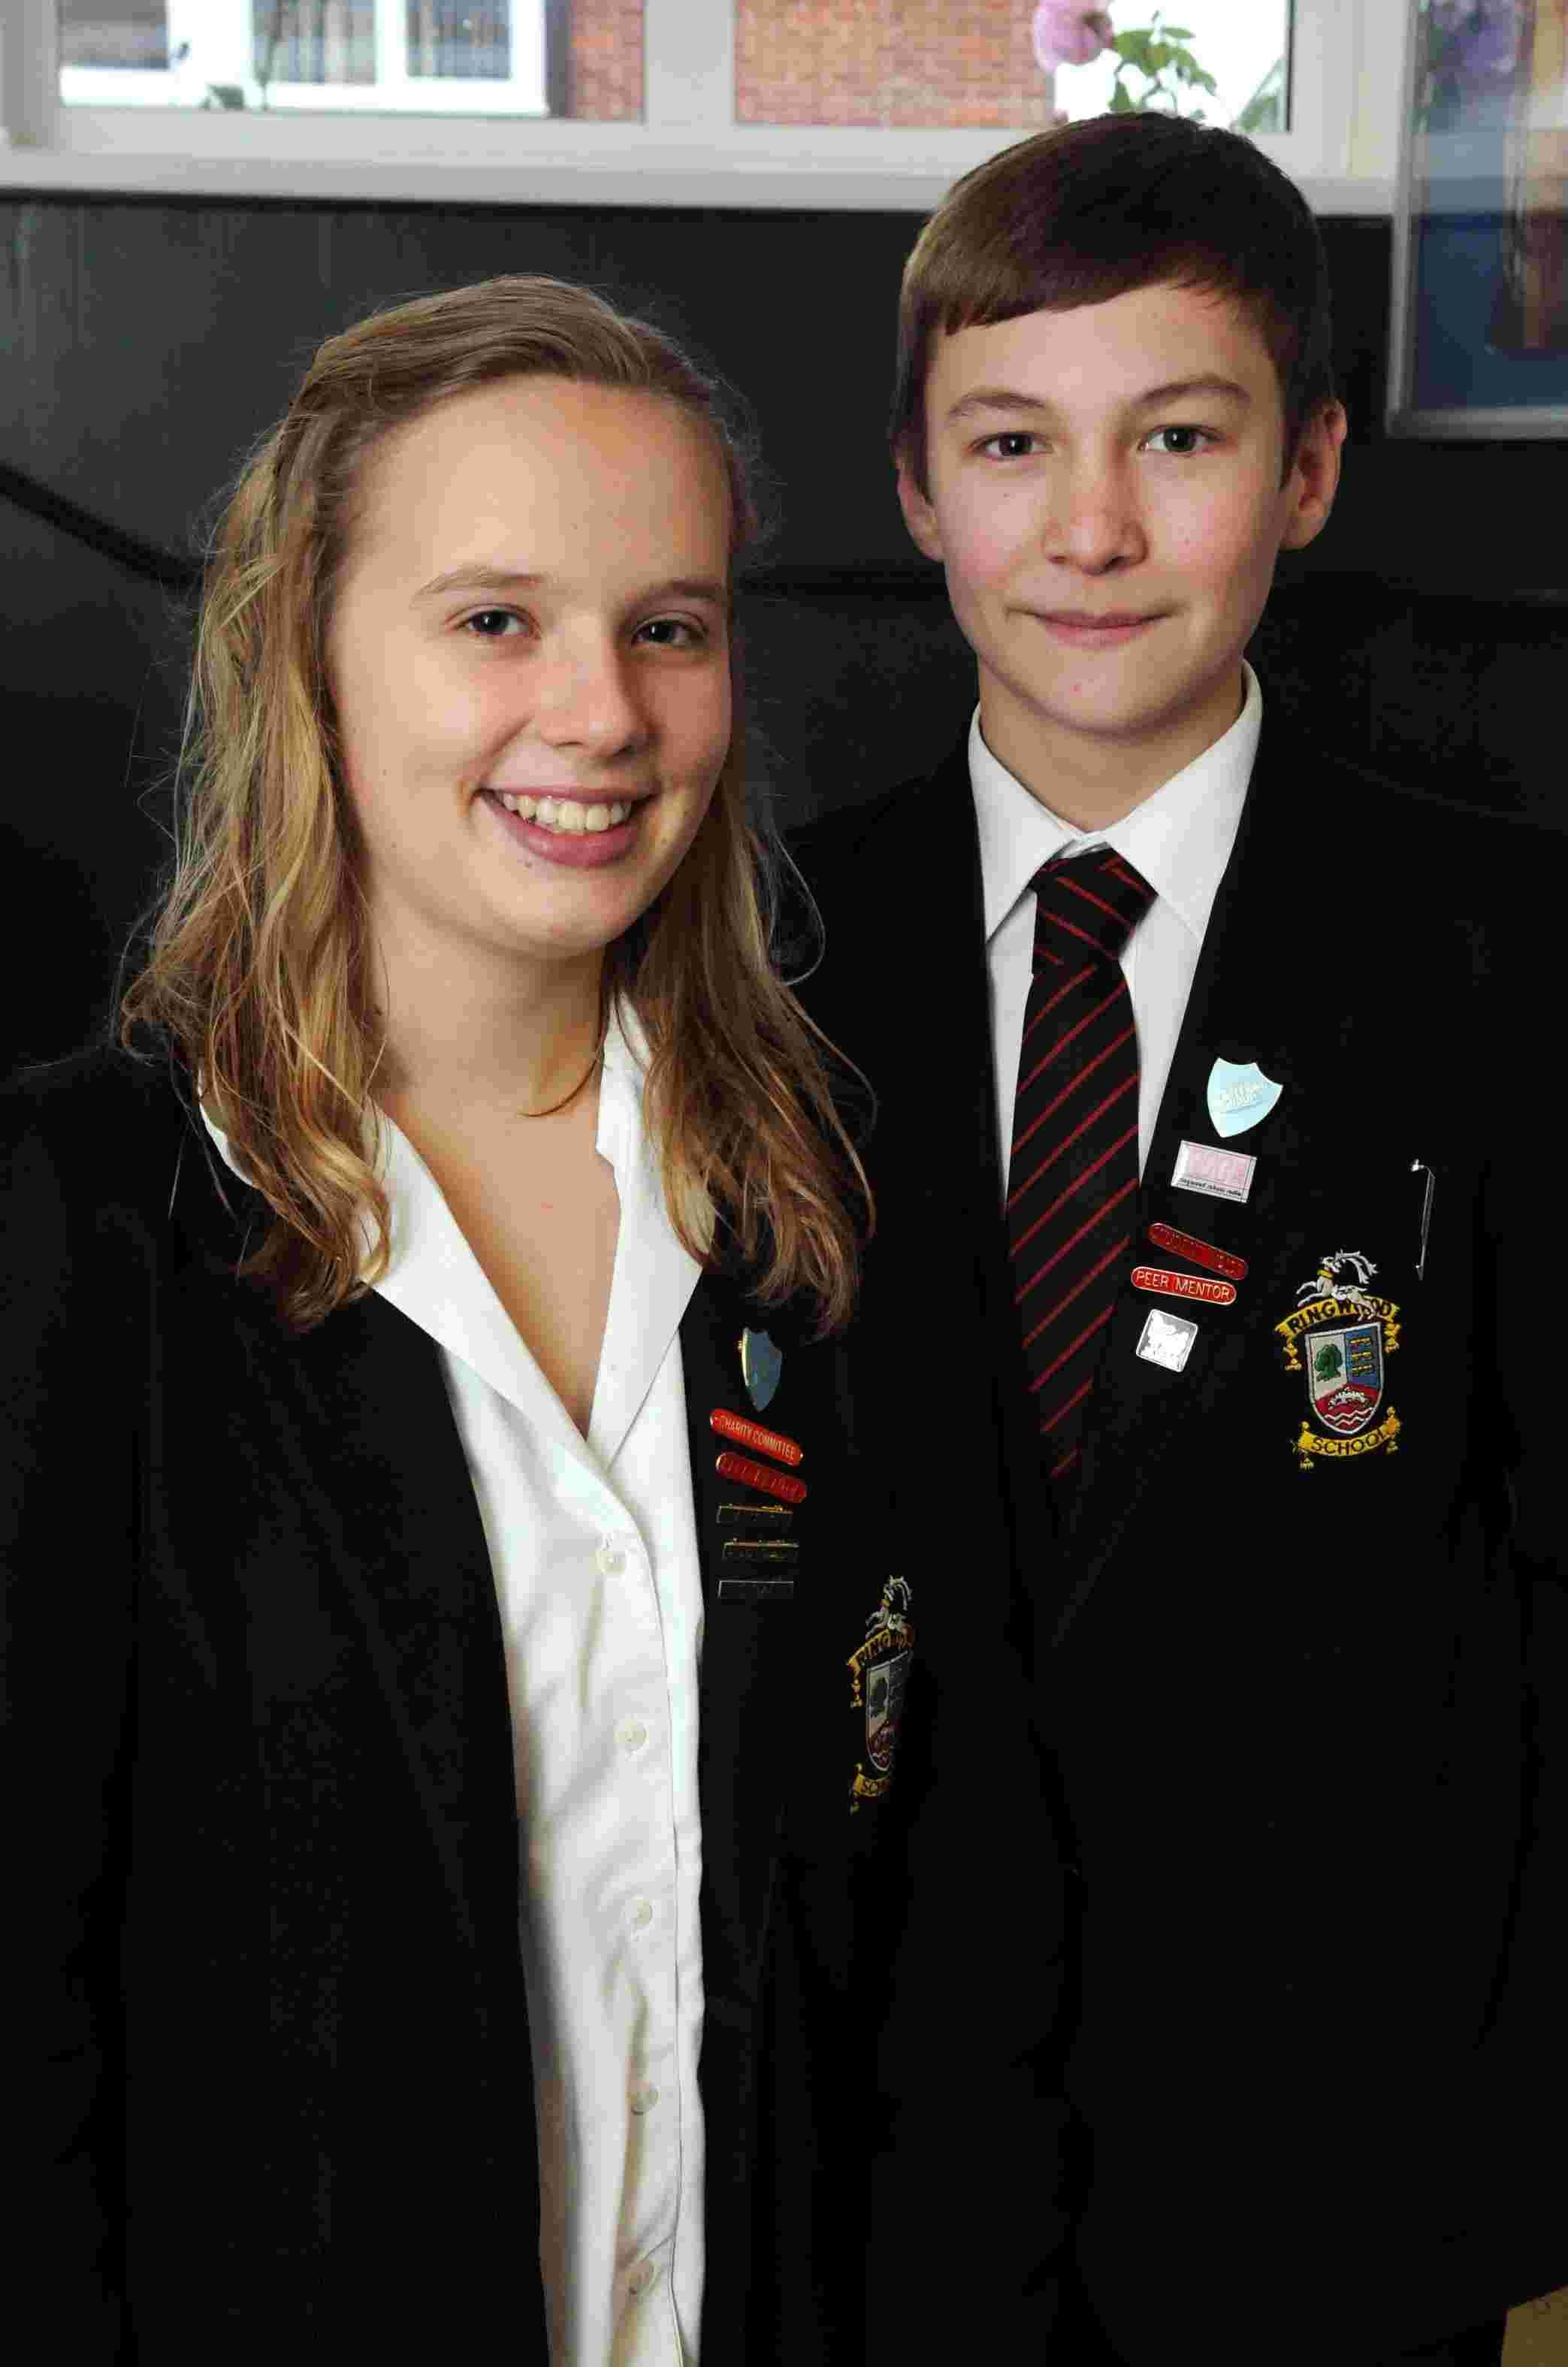 Global ambassadors Millie Wells and Sam Whittingham, from Ringwood School, who are off to India as part of the Send My Friend To School initiative. DC273